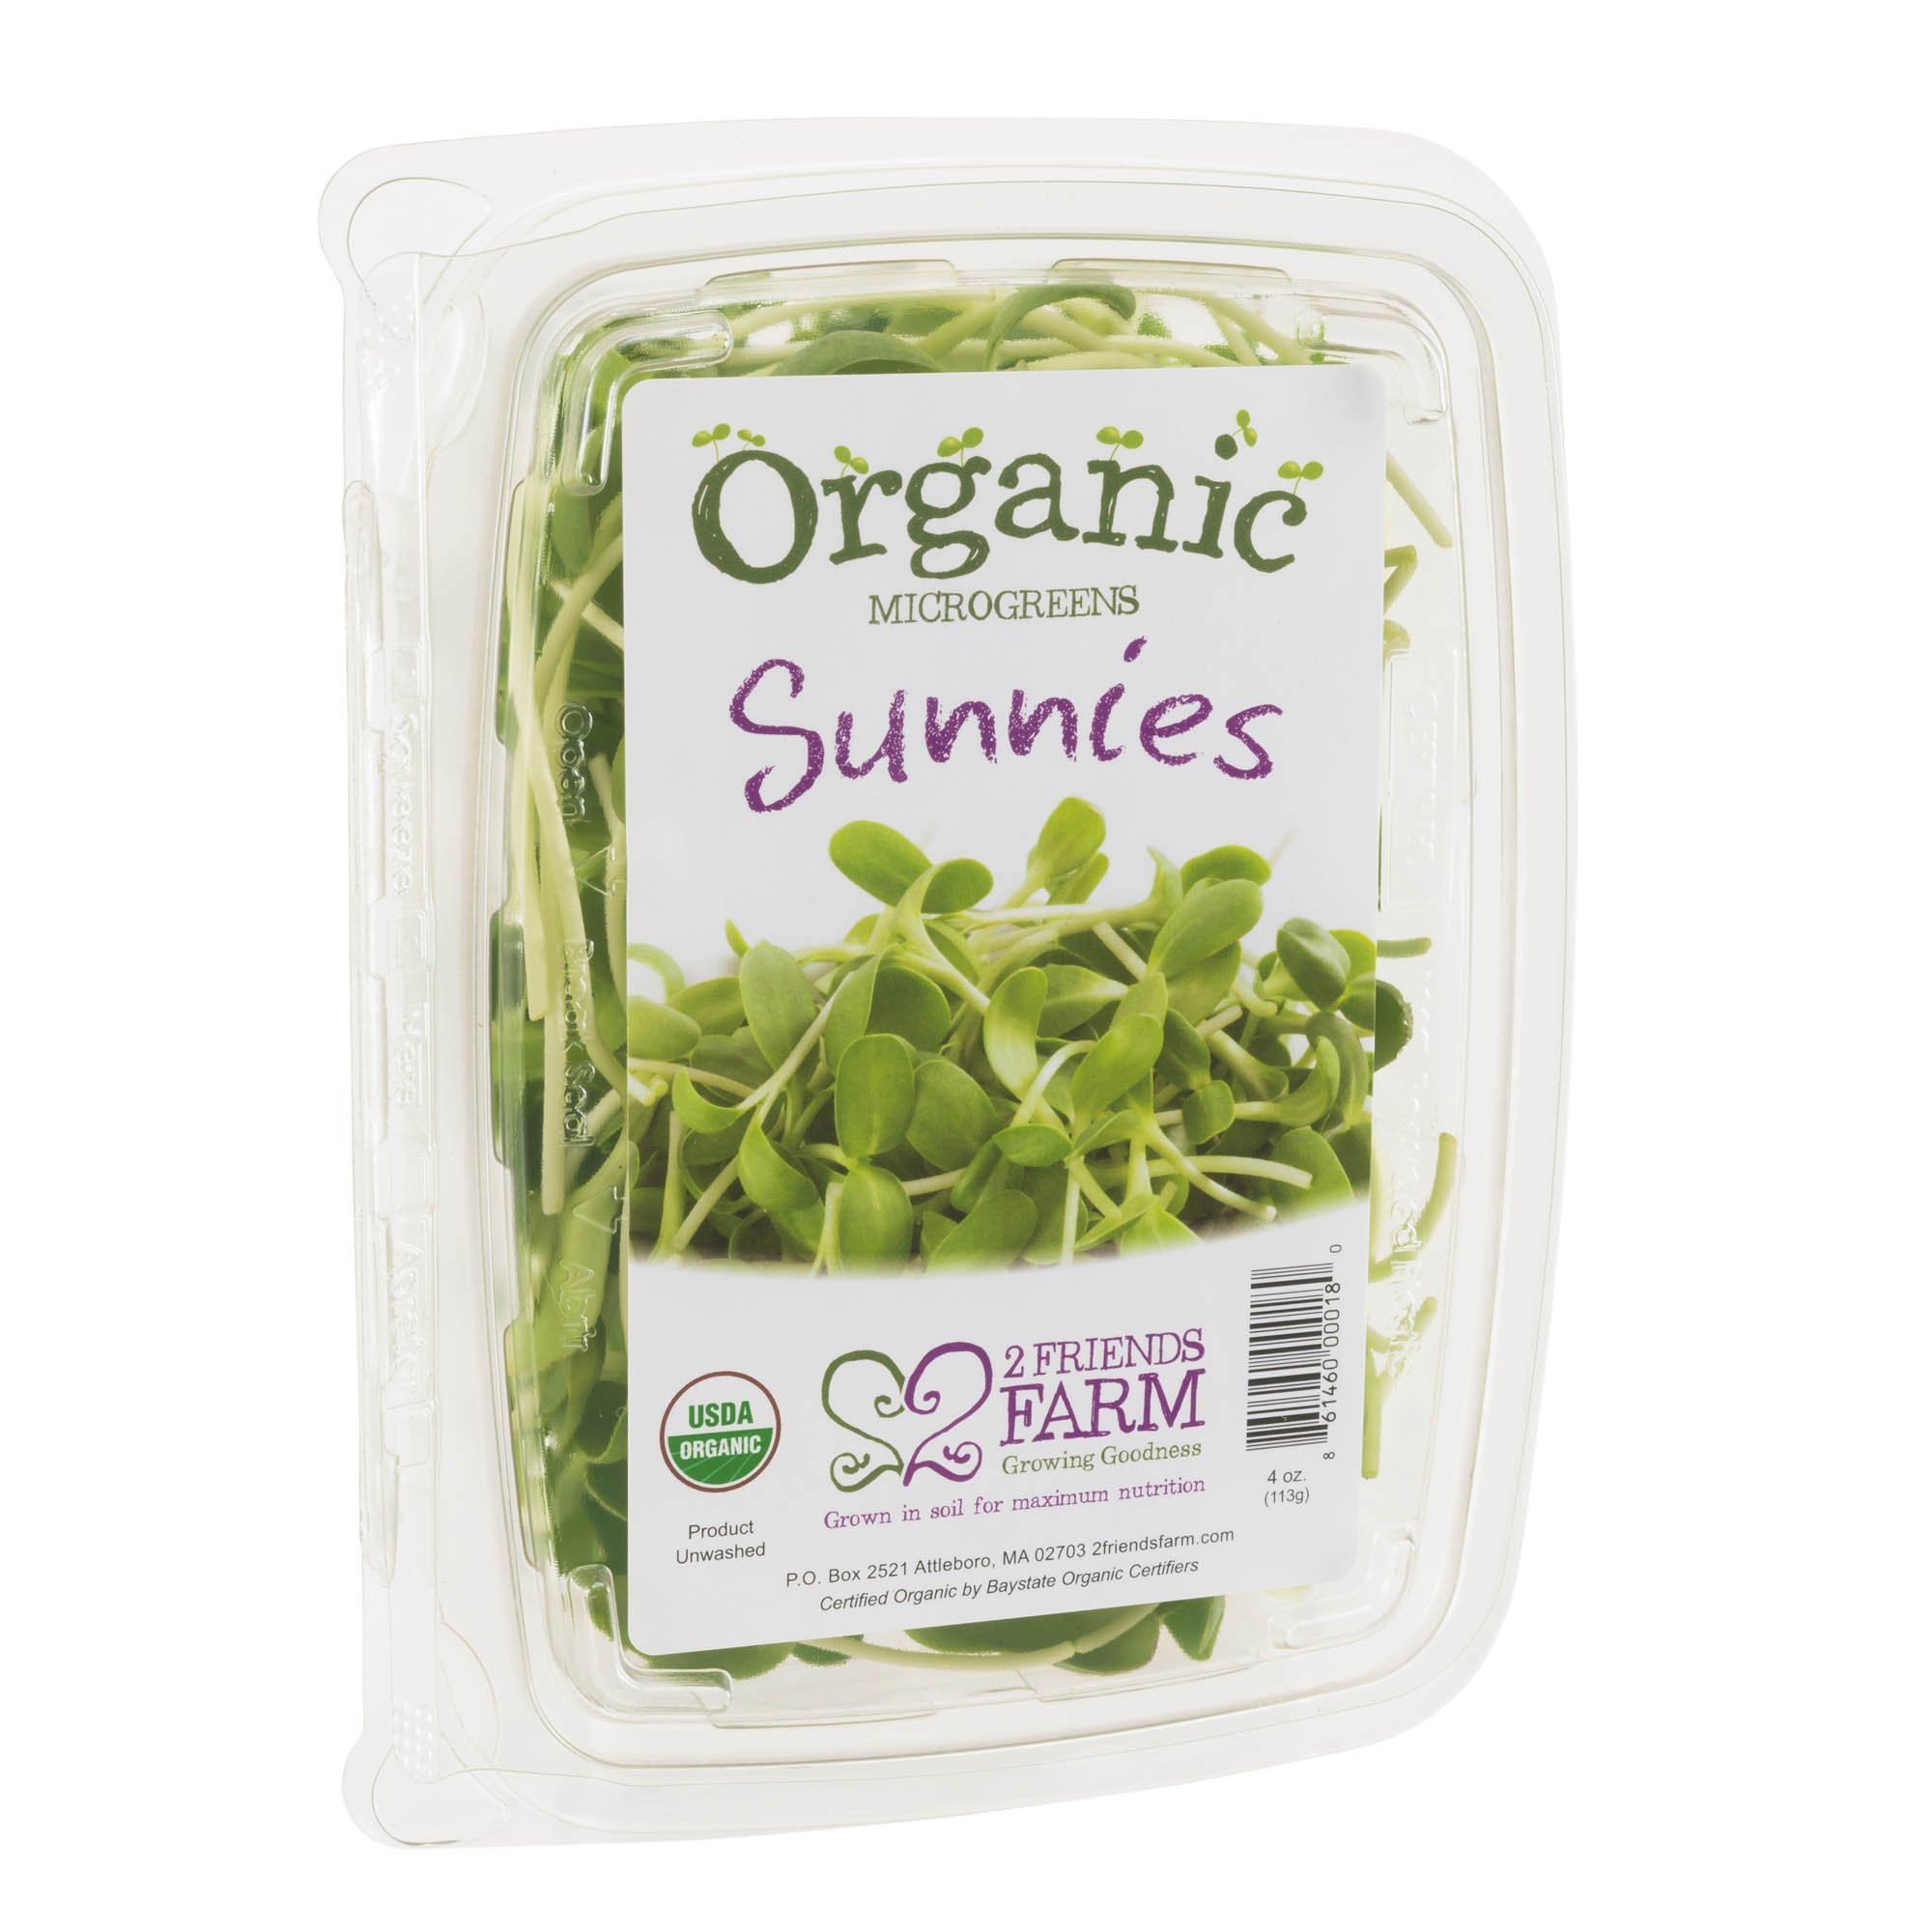 2 Friends Farm Local Northeast Organic Sunnies Microgreens 4oz